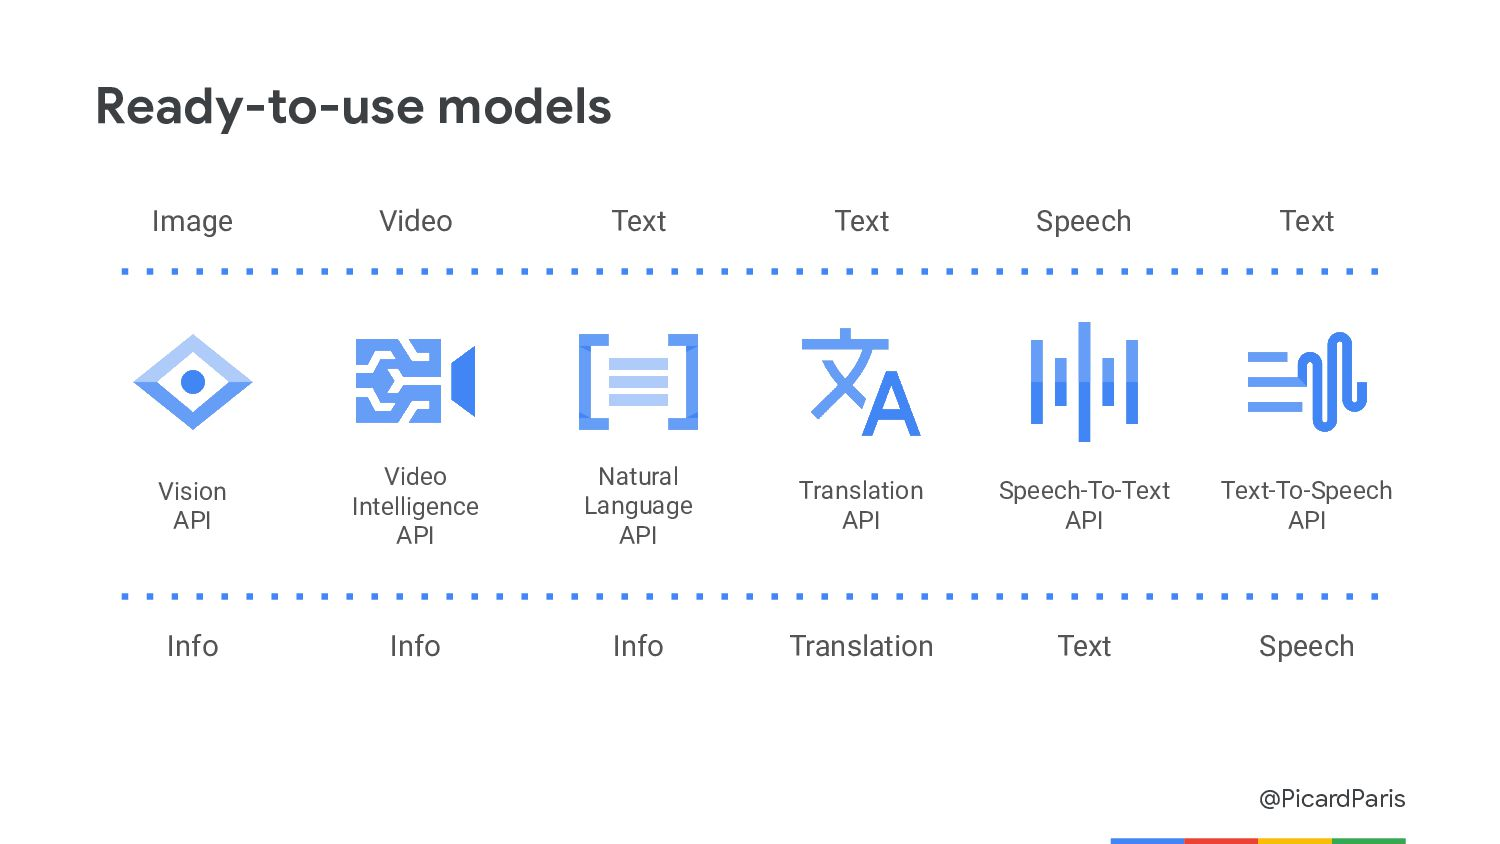 01 Machine Learning APIs Ready-to-use models